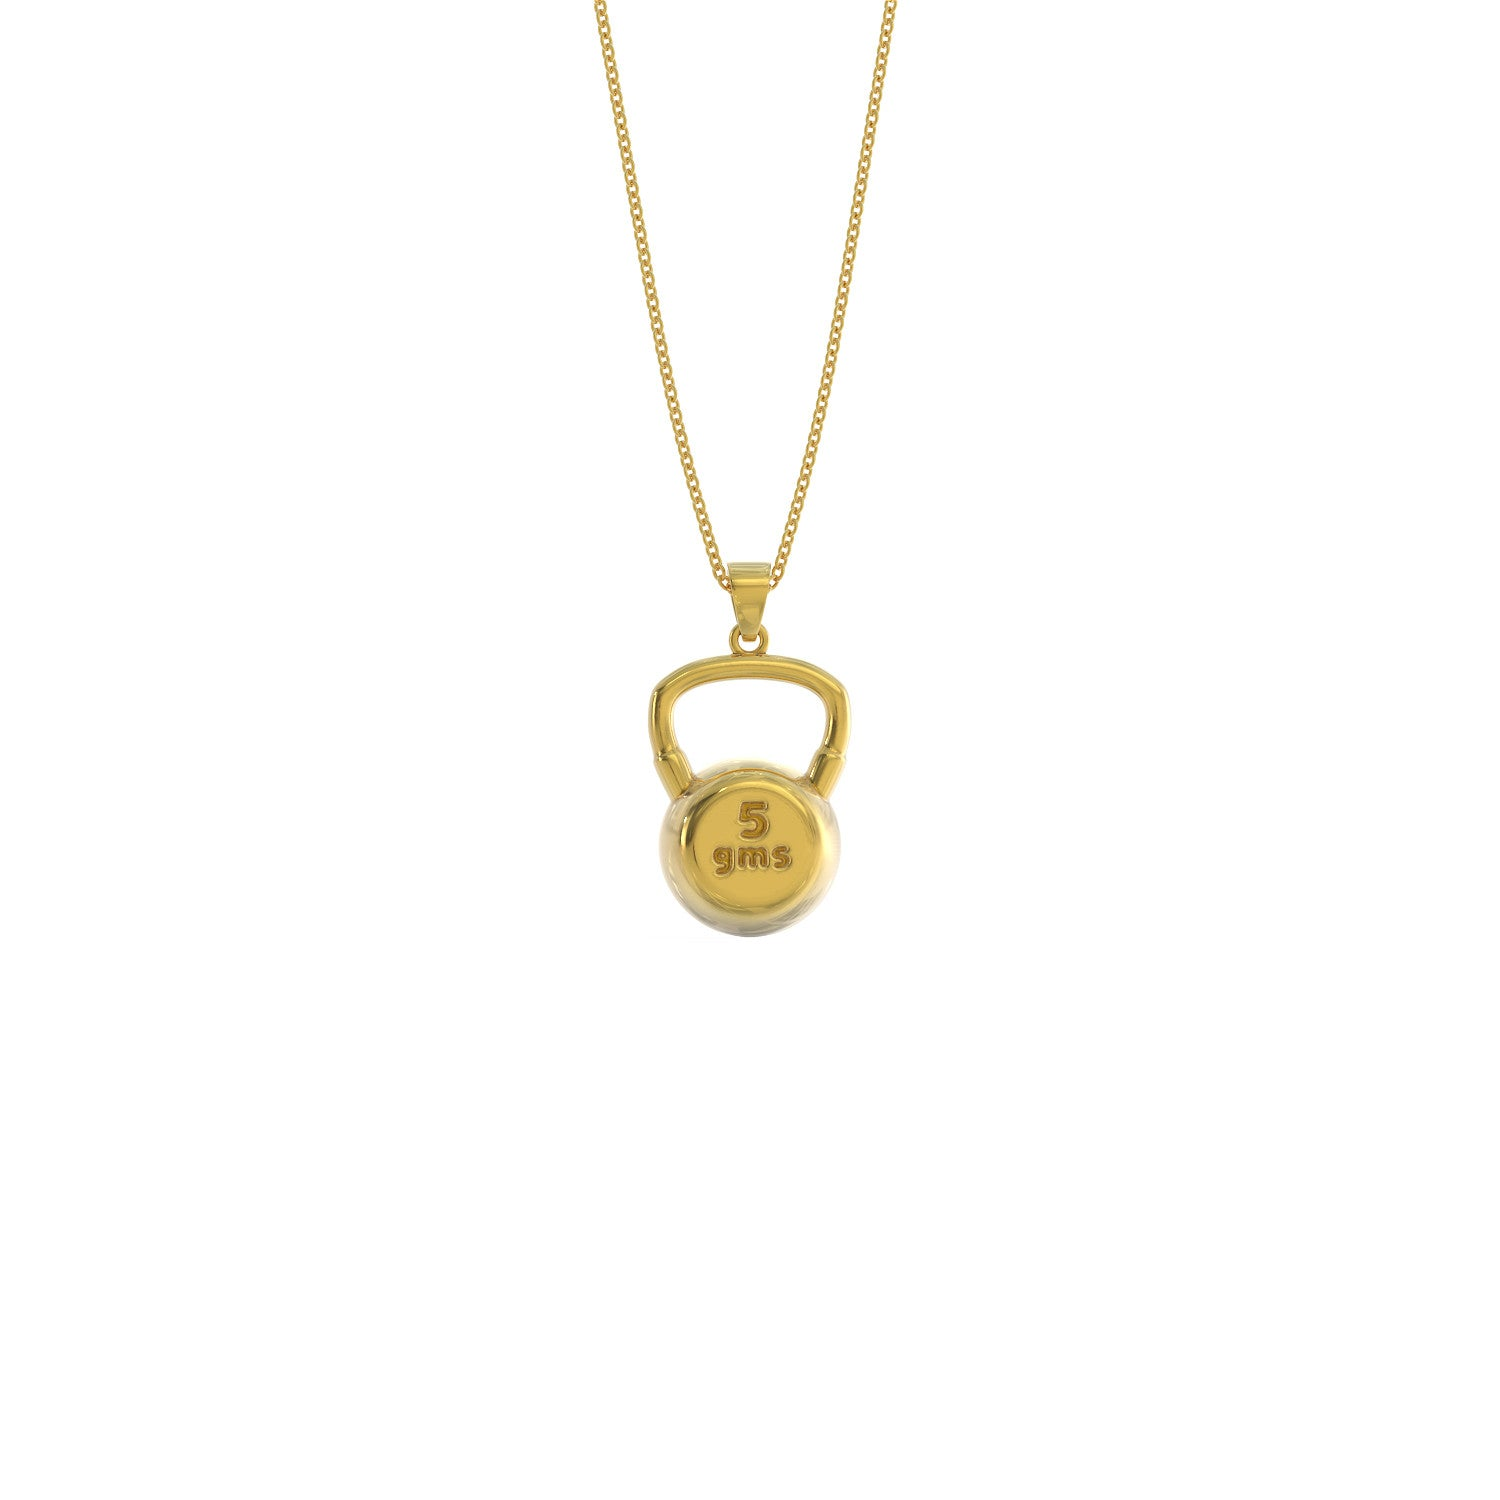 5gm Kettle Bell Necklace